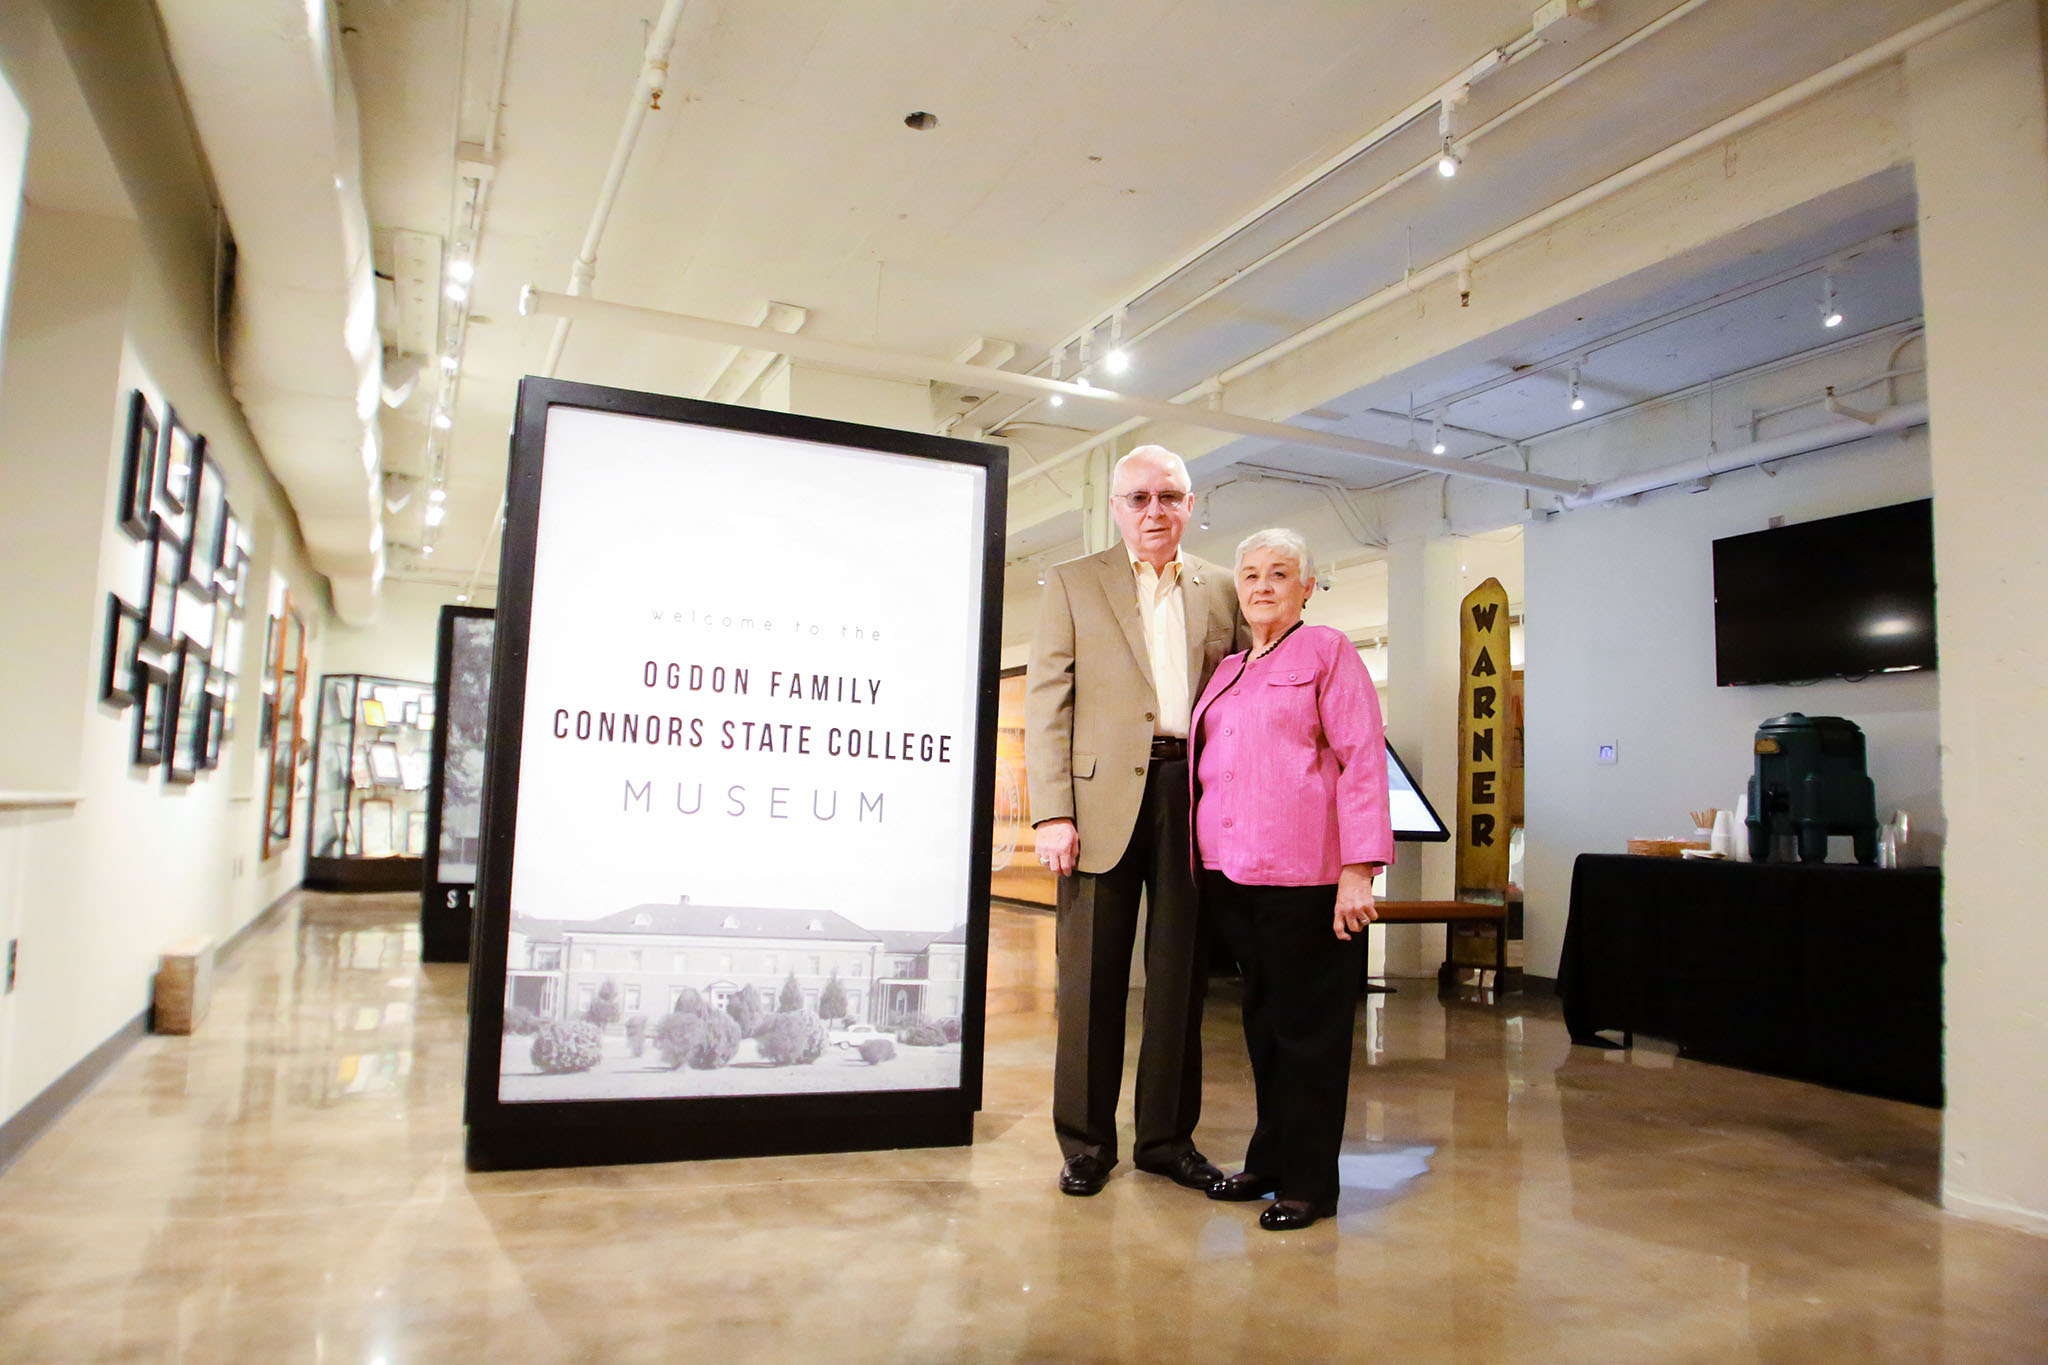 Ogdon-Family_Connors-State-College-Museum